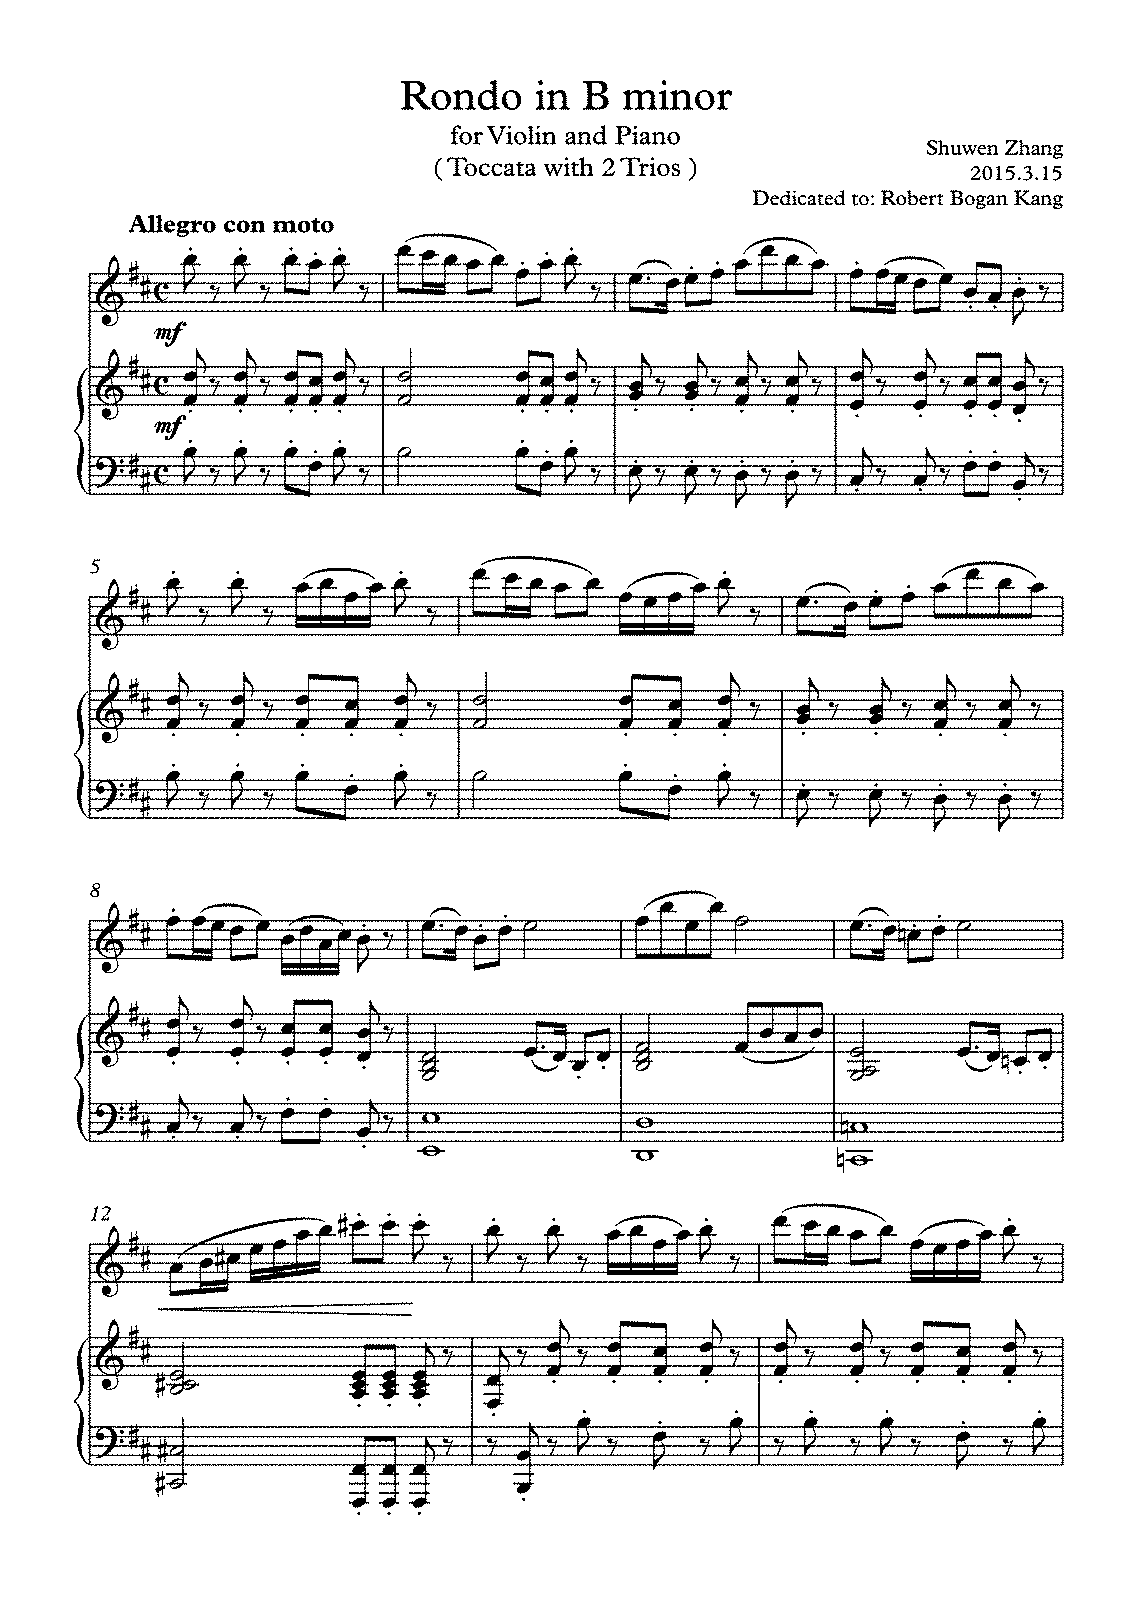 PMLP596792-Rondo in B minor - Score and parts.pdf